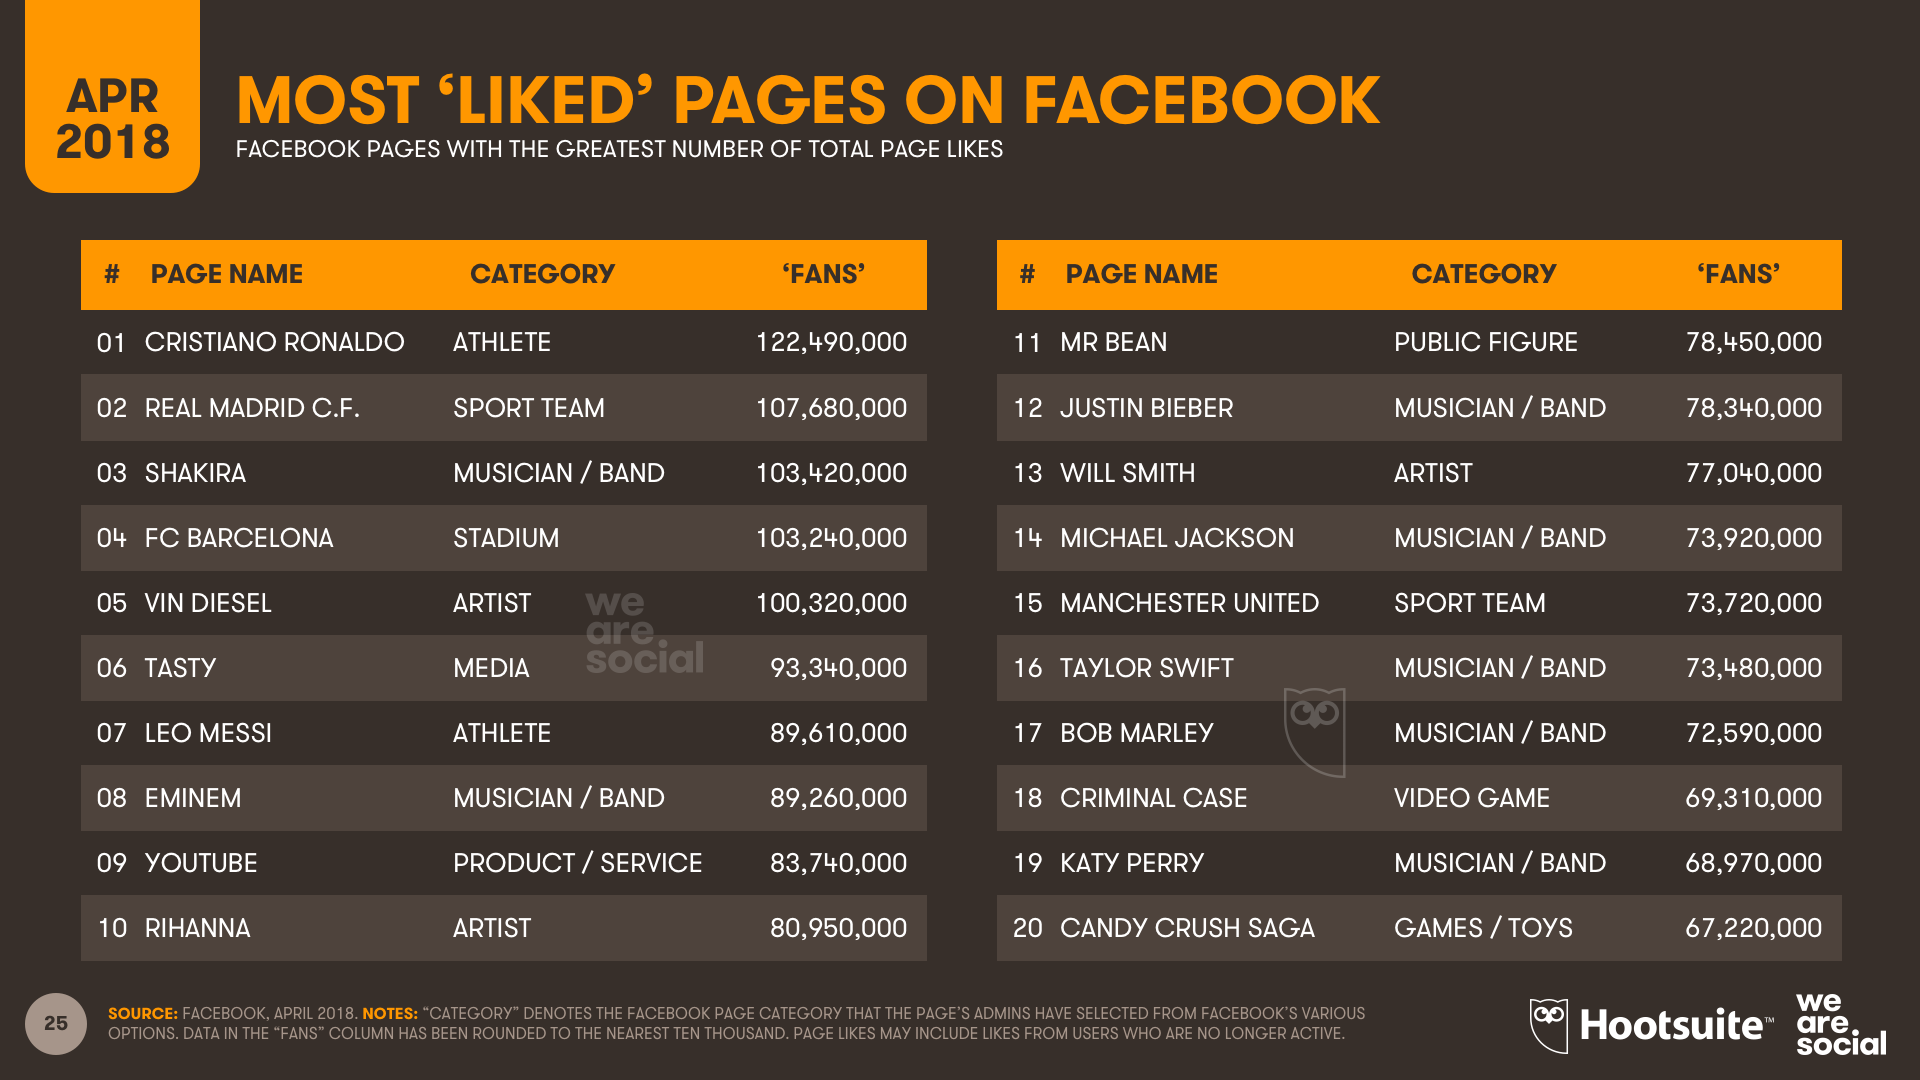 Top Facebook Pages - Q1 2018